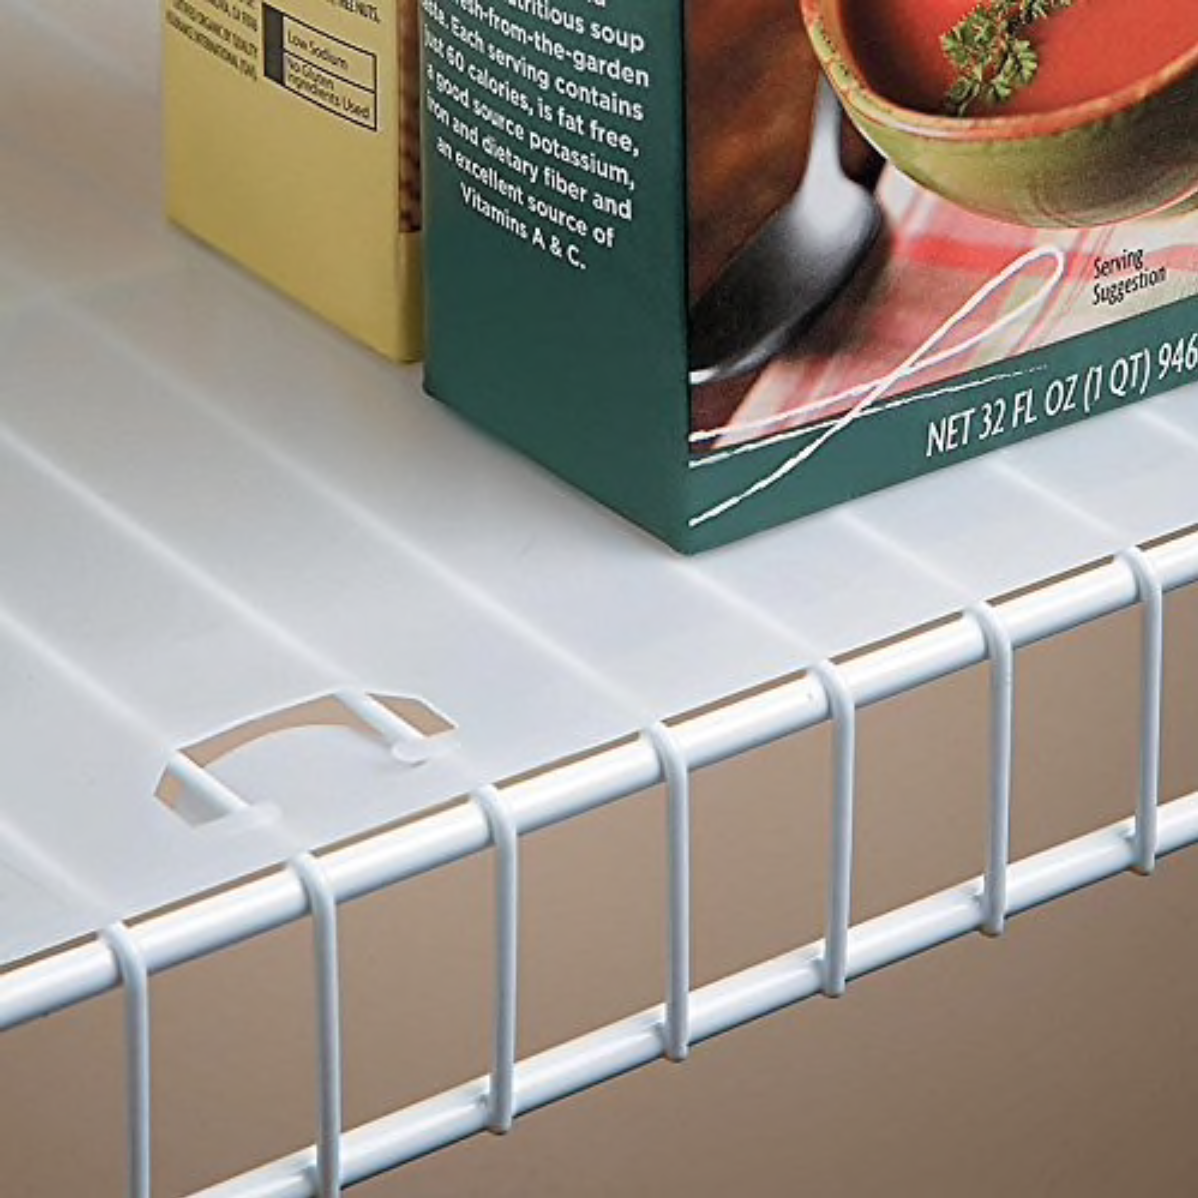 Pantry Organization - Shelf Liners